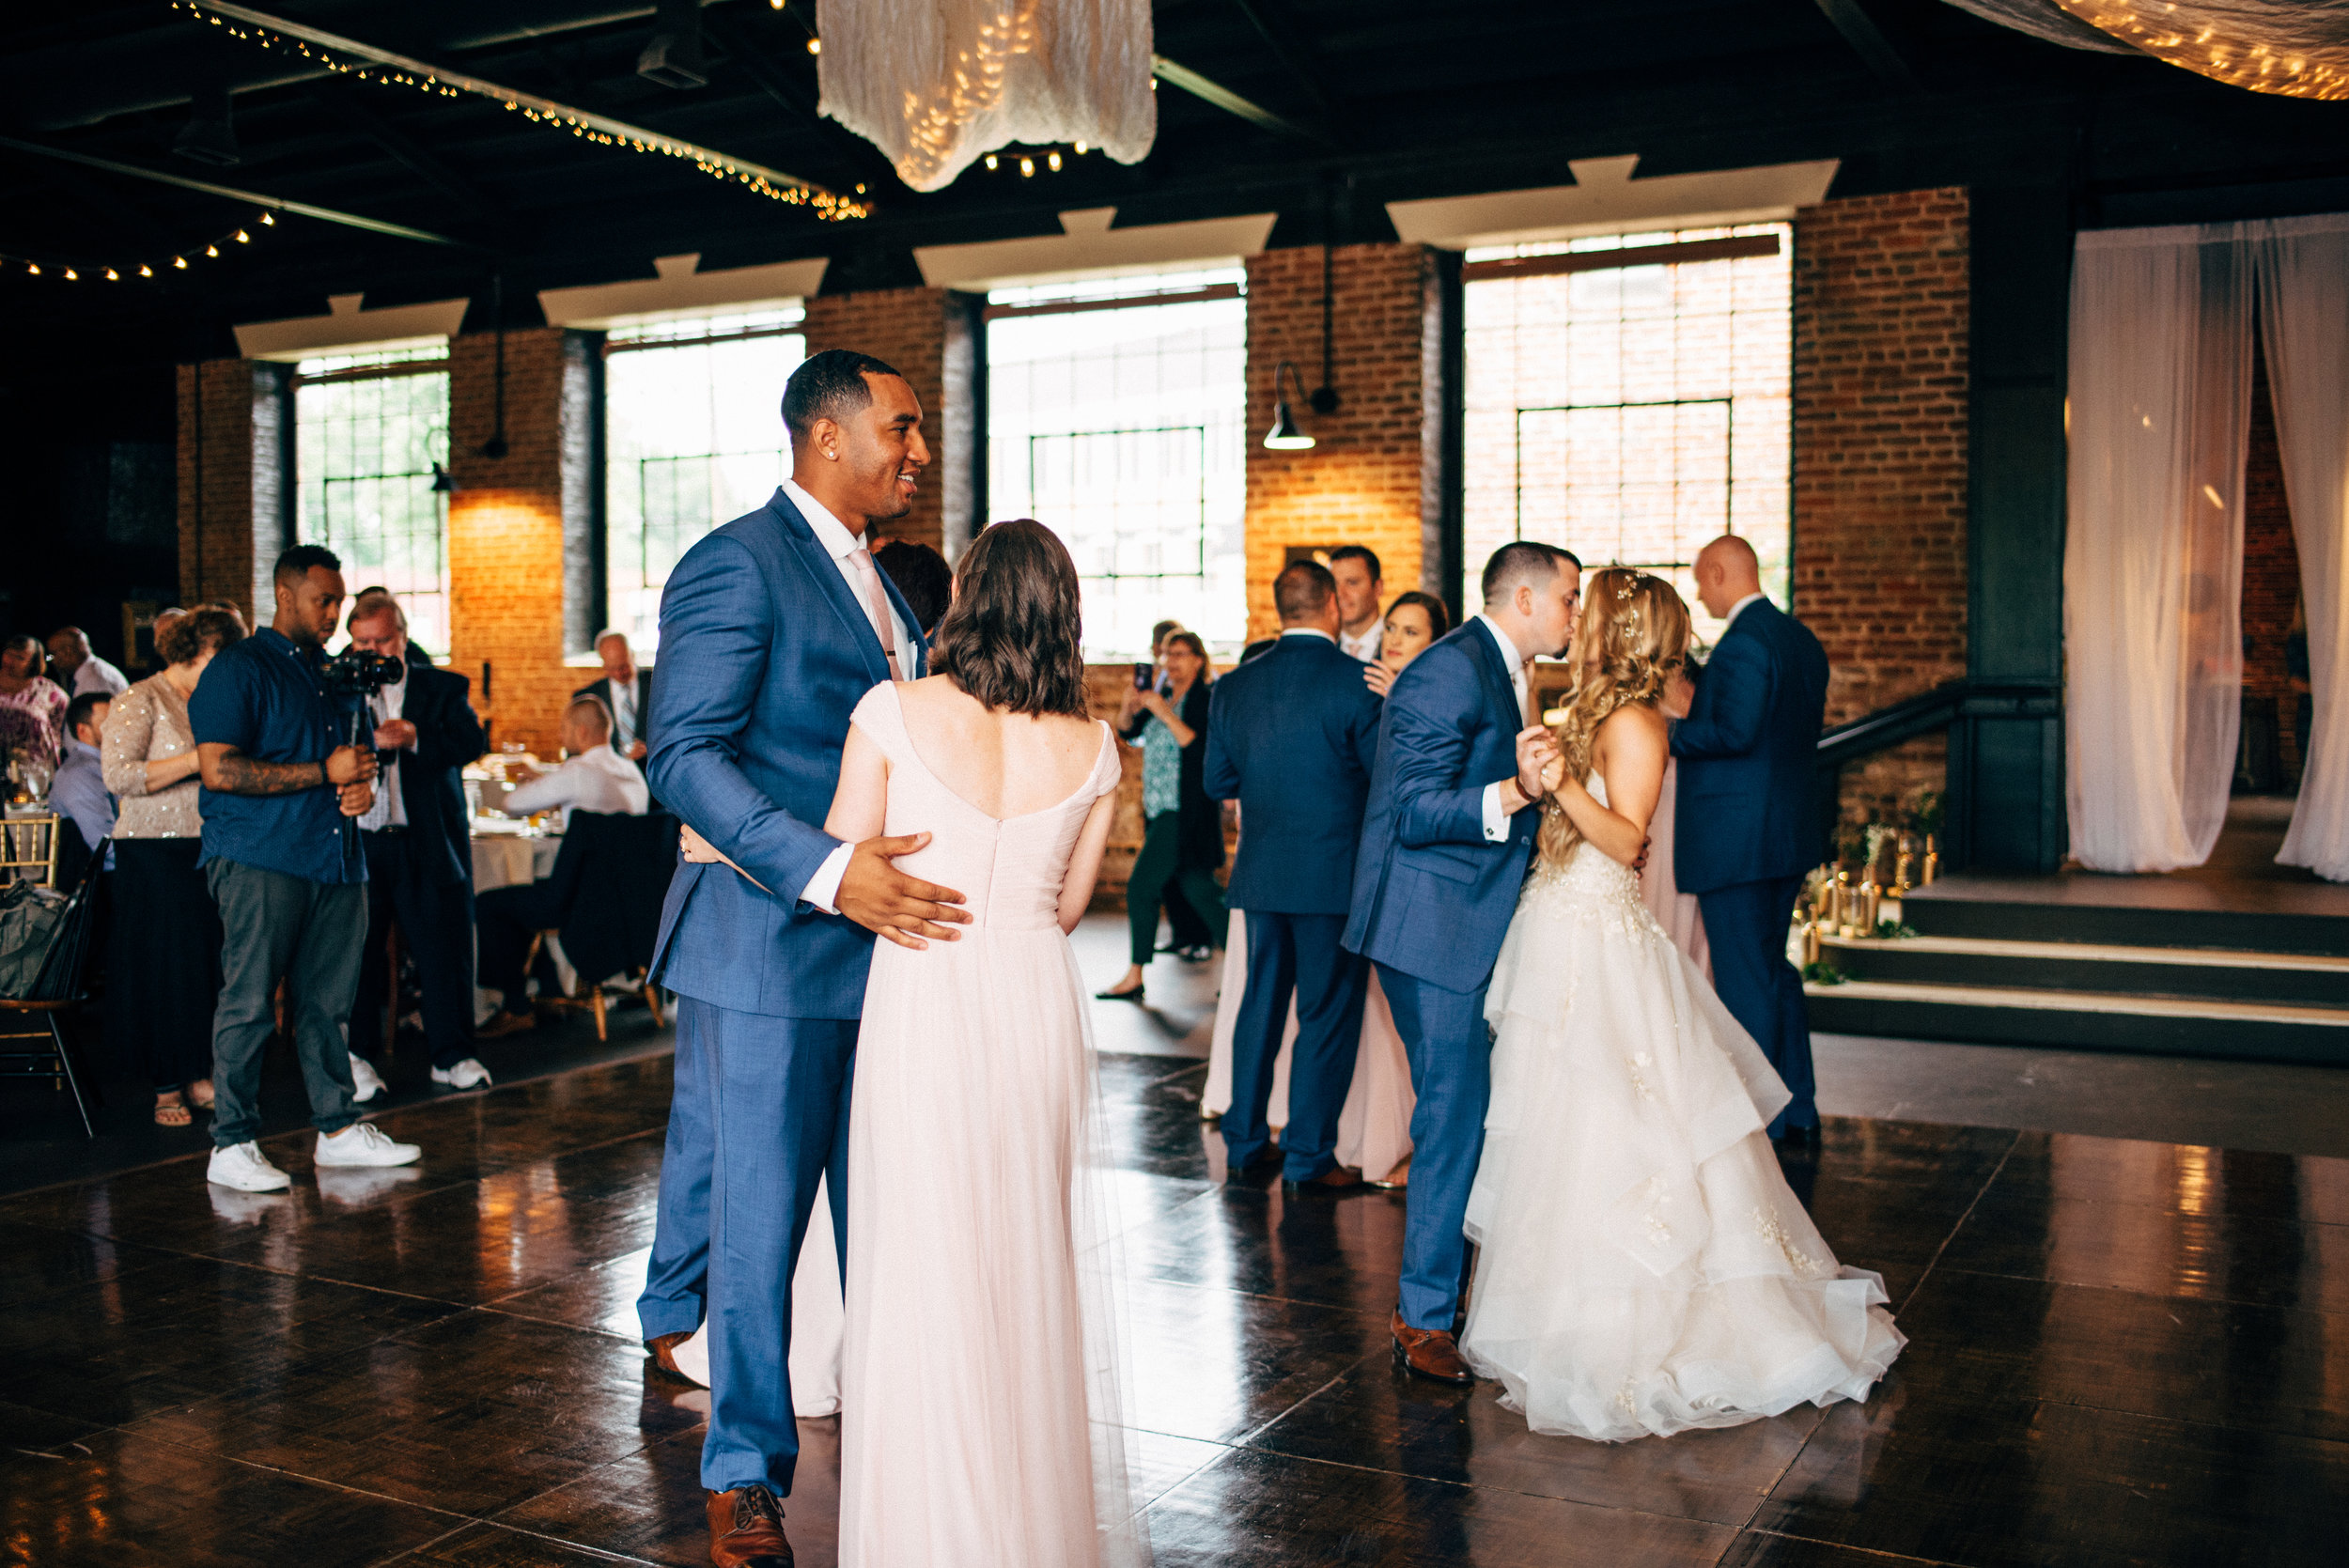 bridal party dancing during wedding reception at the Inn at the Old Silk Mill